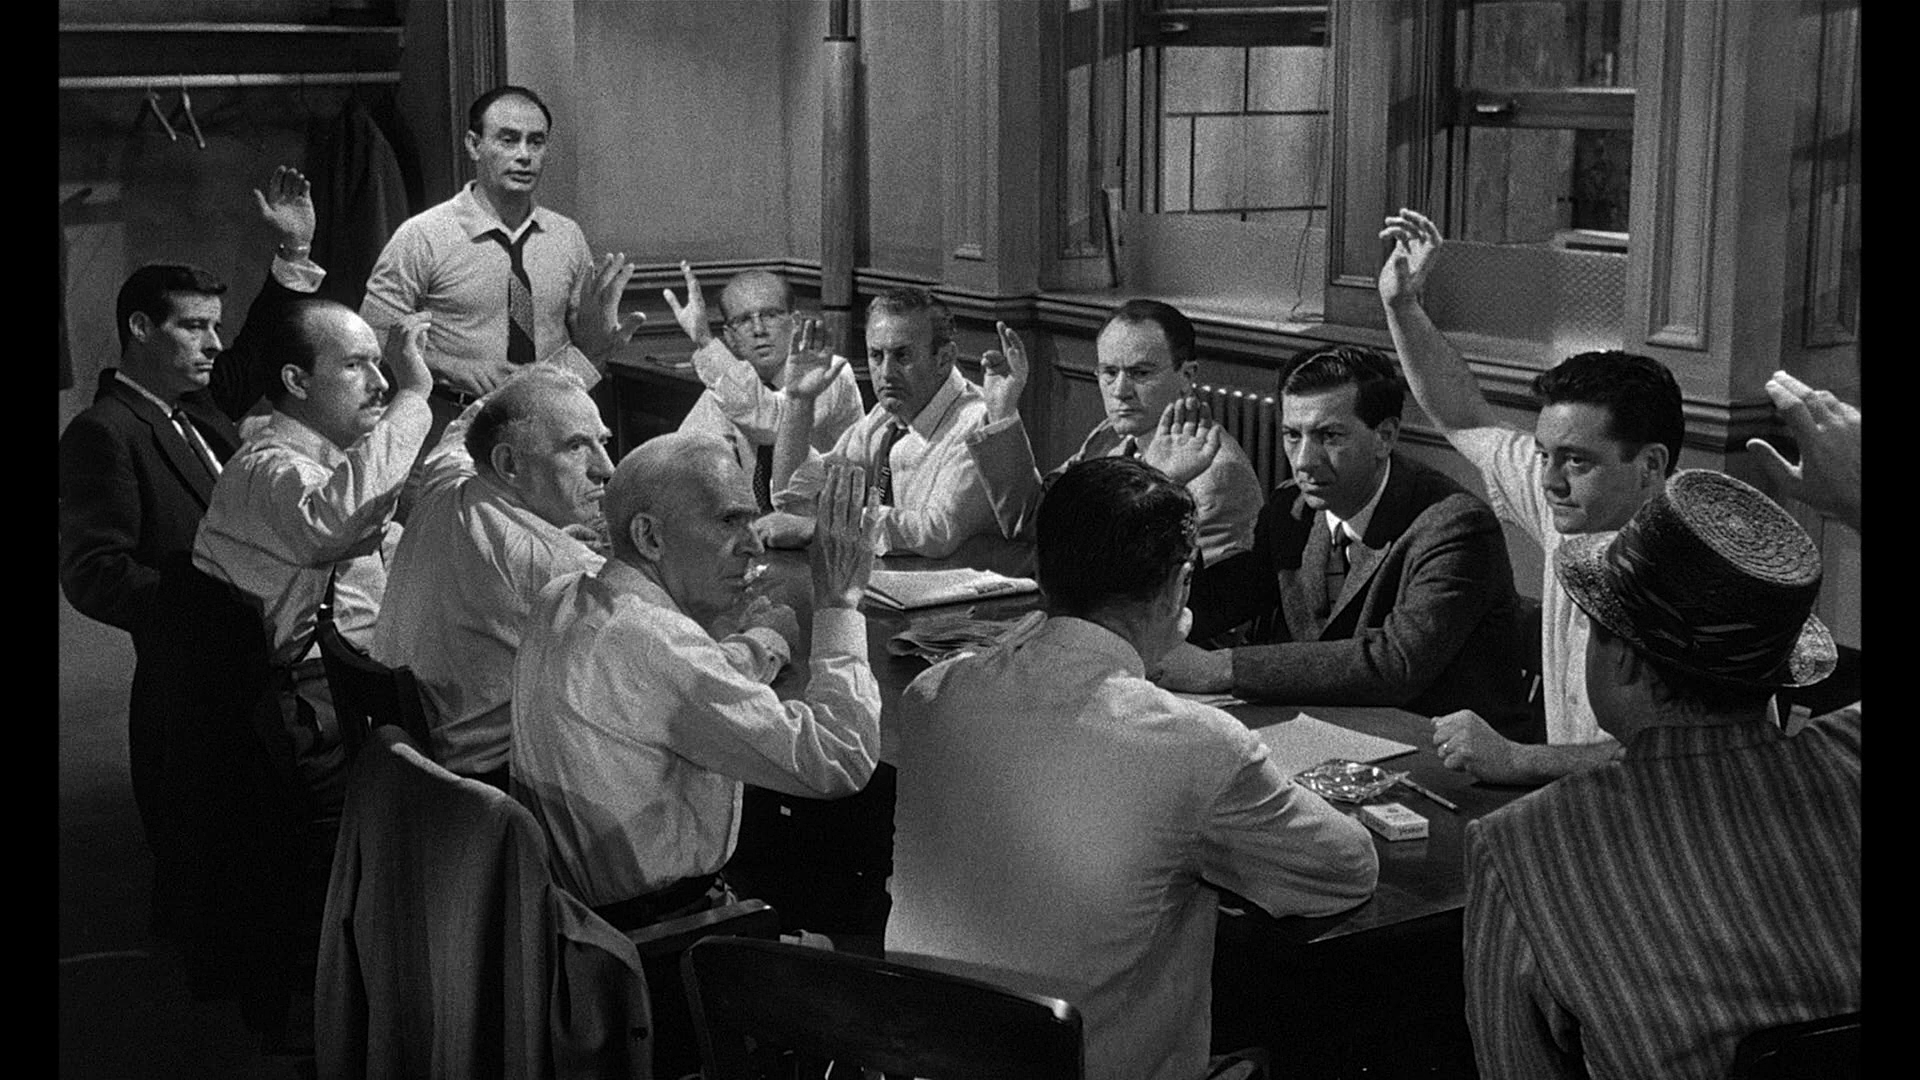 High Resolution Wallpaper | 12 Angry Men 1920x1080 px